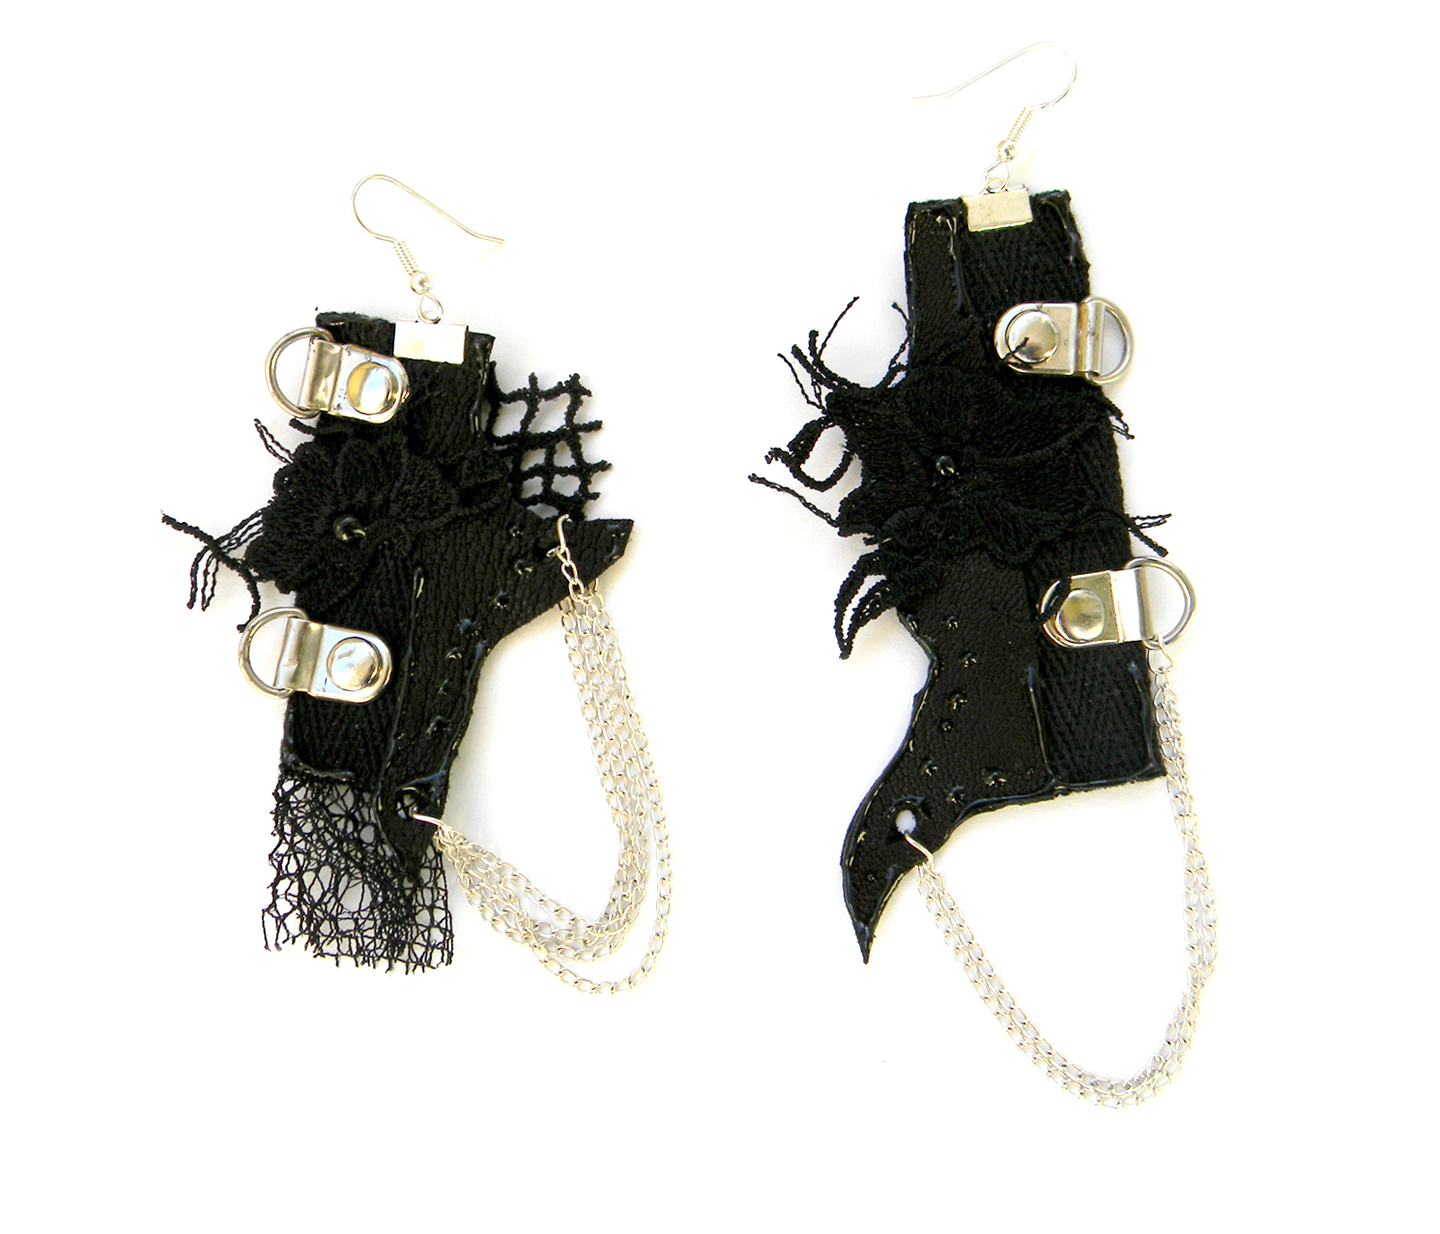 Handmade Earrings Steampunk Gothic Jewelry